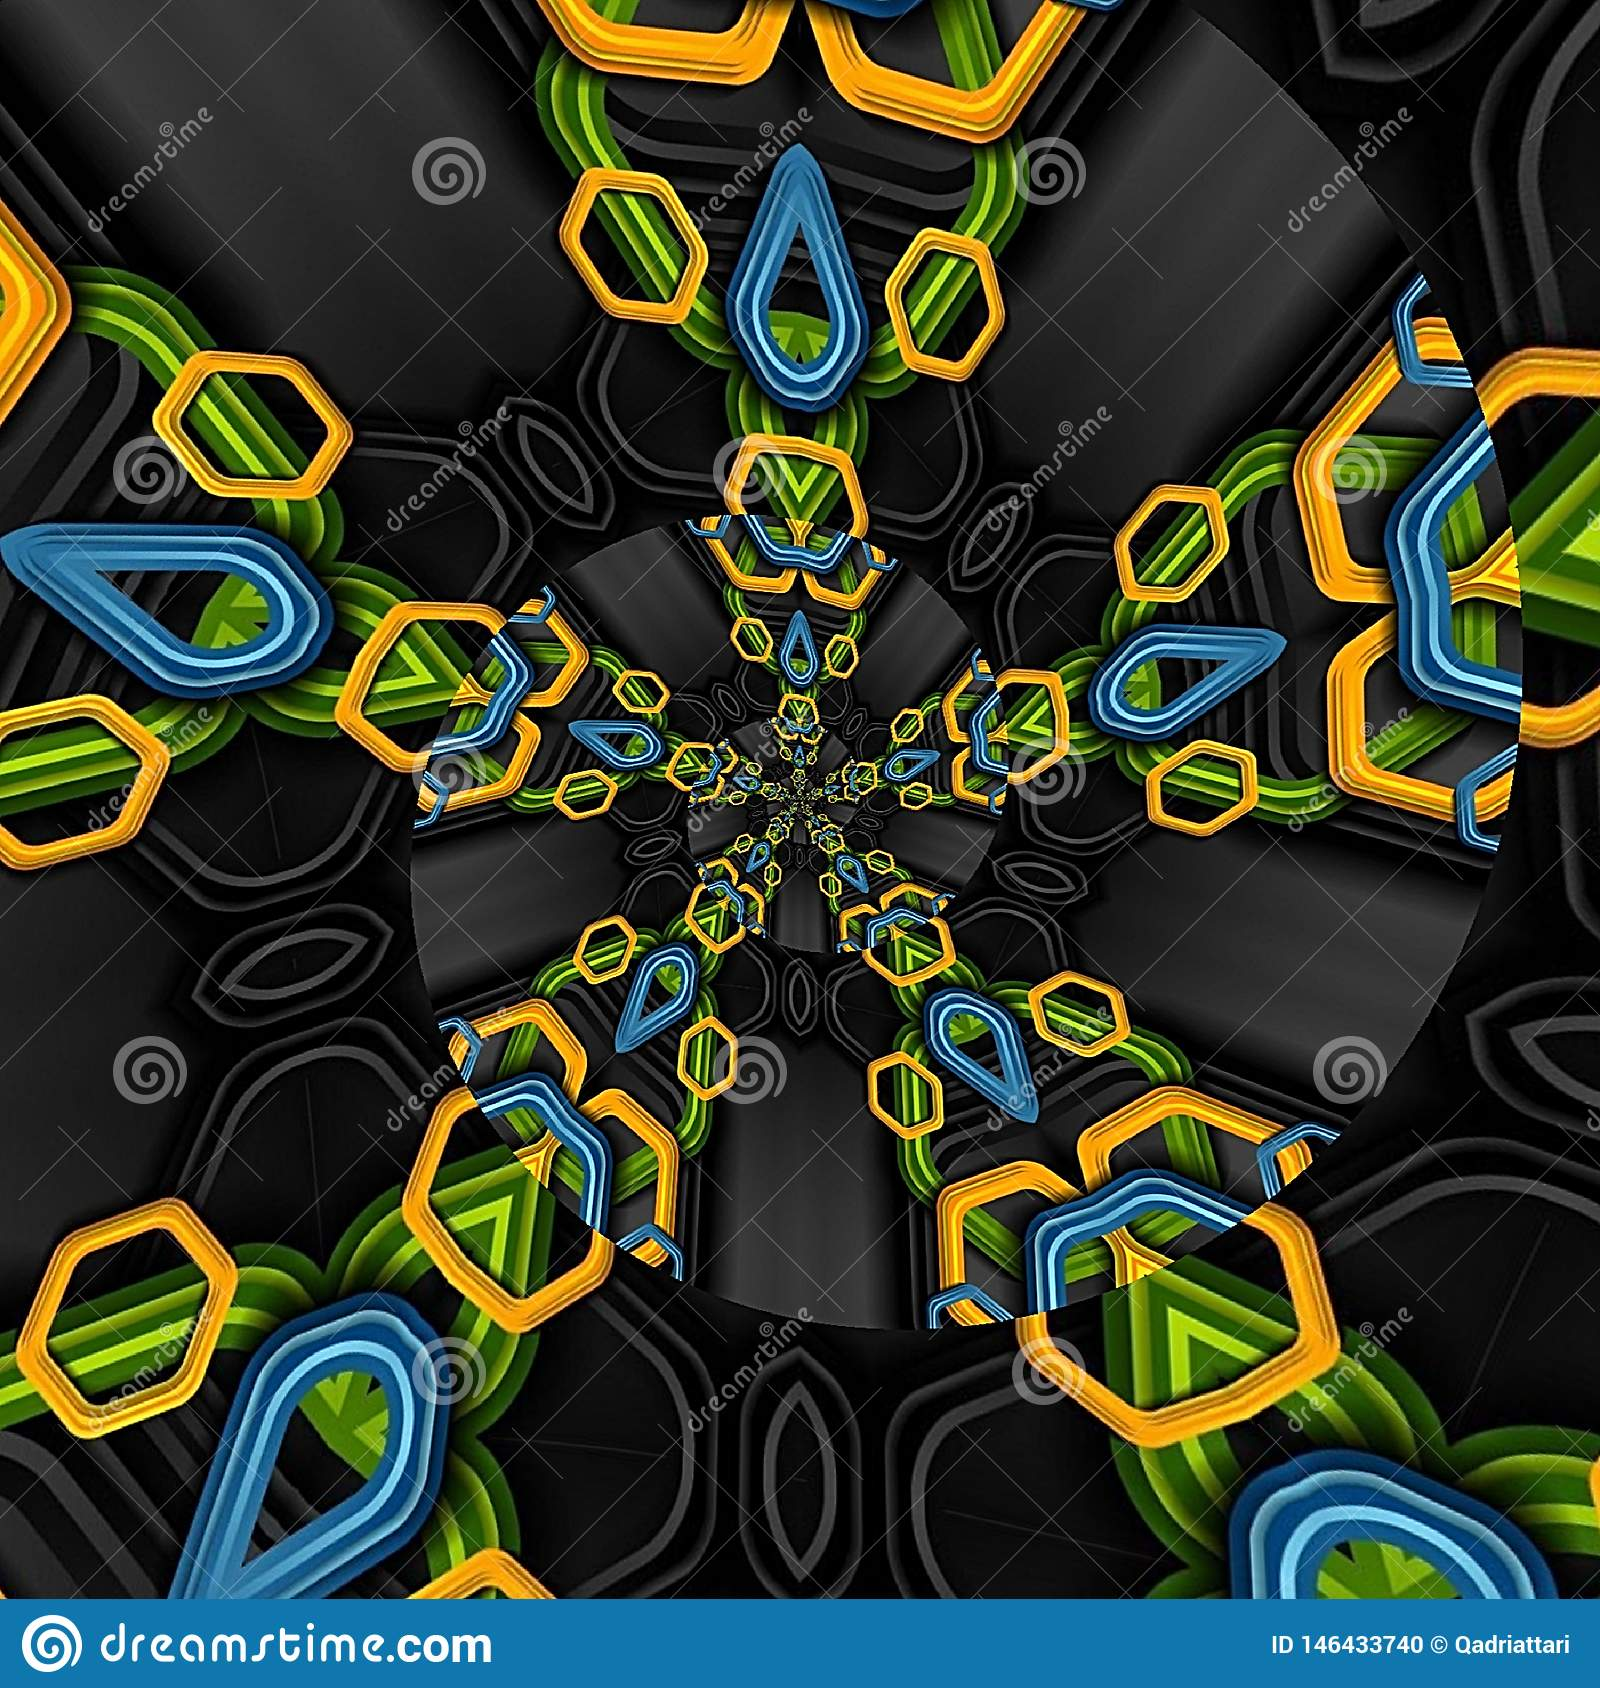 Black And Yellow Clothes Wallpapers And Backgrounds Stock